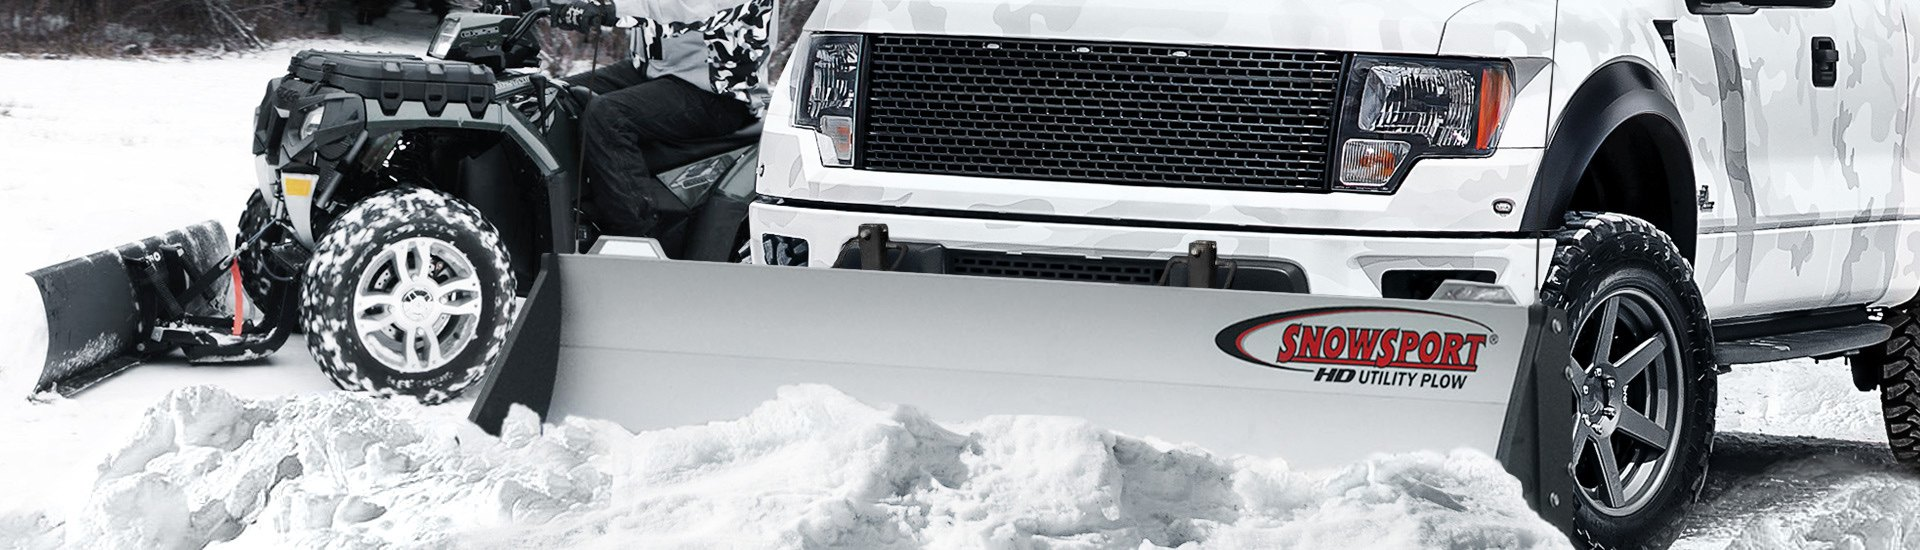 An Affordable Snow Plow For Those Who Need It